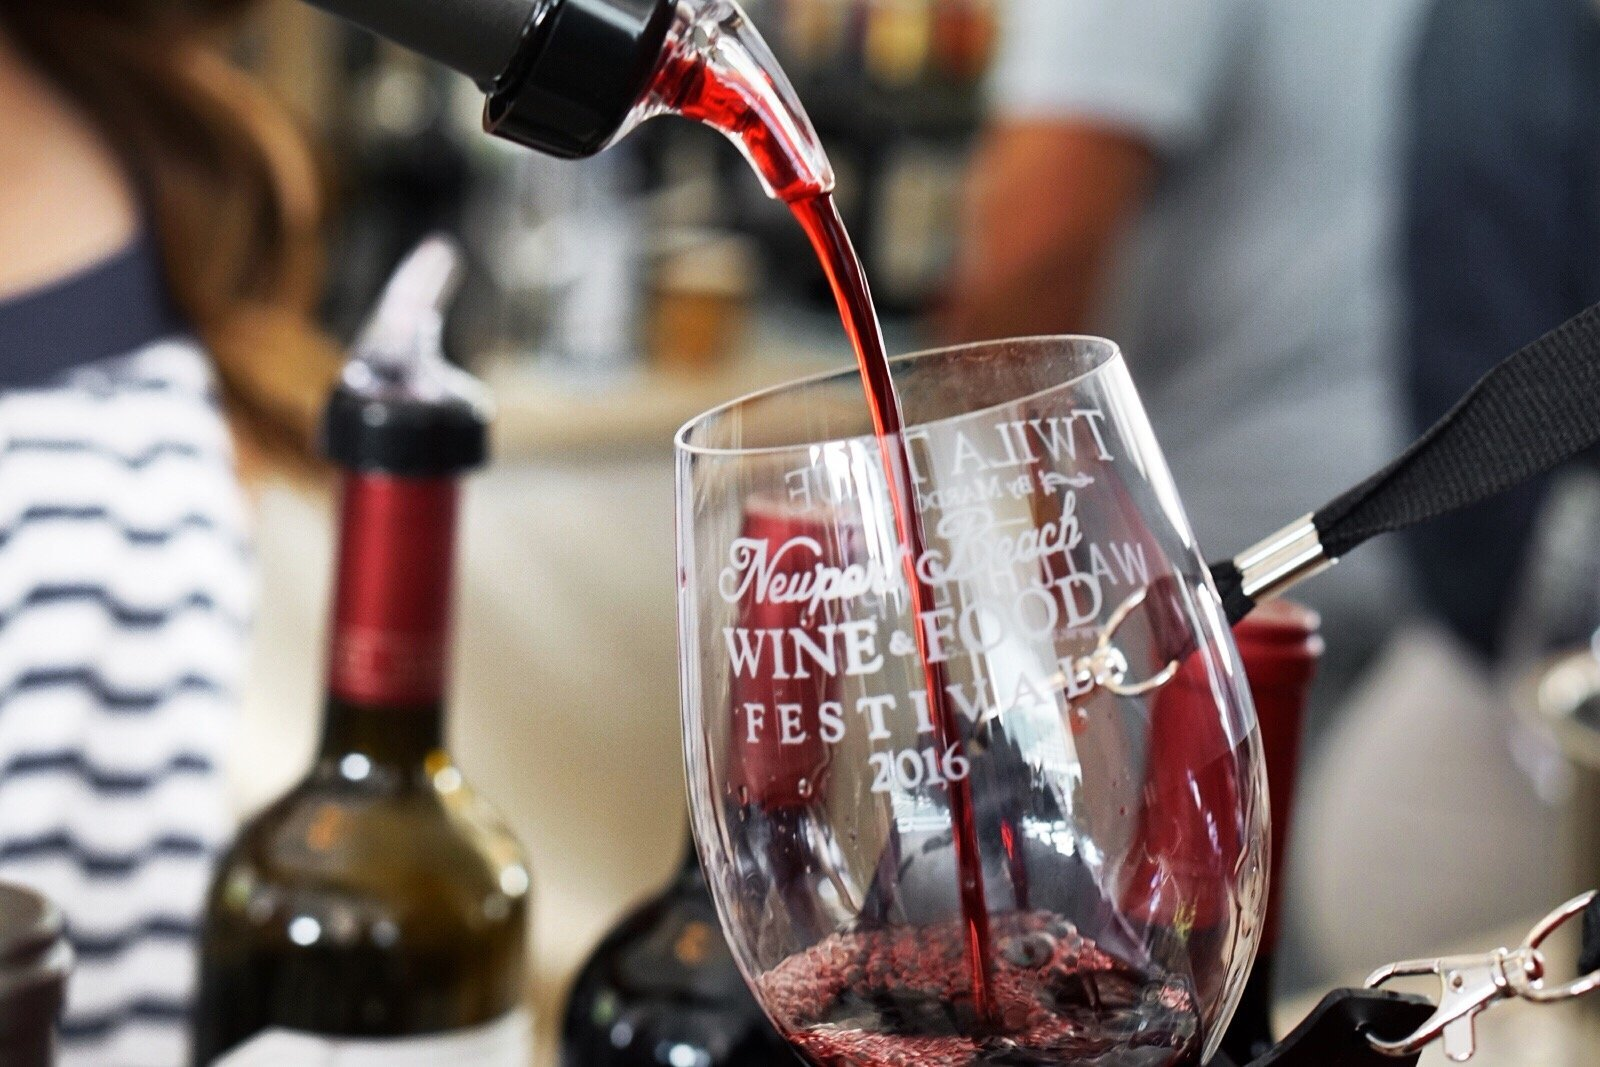 The Newport Beach Wine and Food Festival is the Most Anticipated Foodie Event of the Year